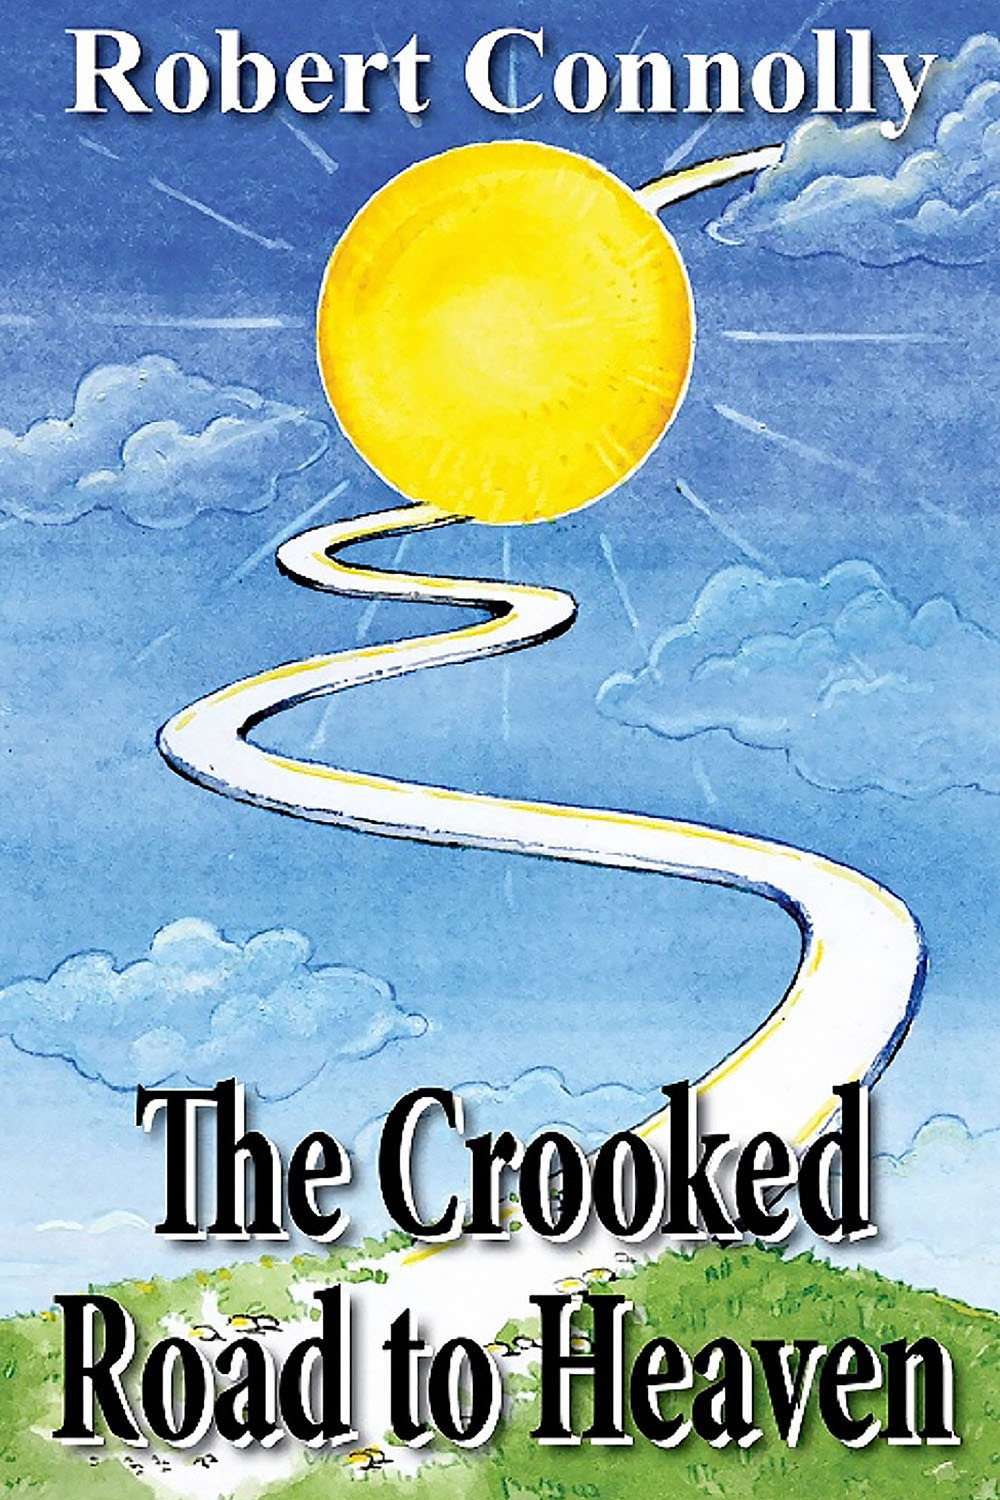 Connolly, Robert - The Crooked Road to Heaven, ebook